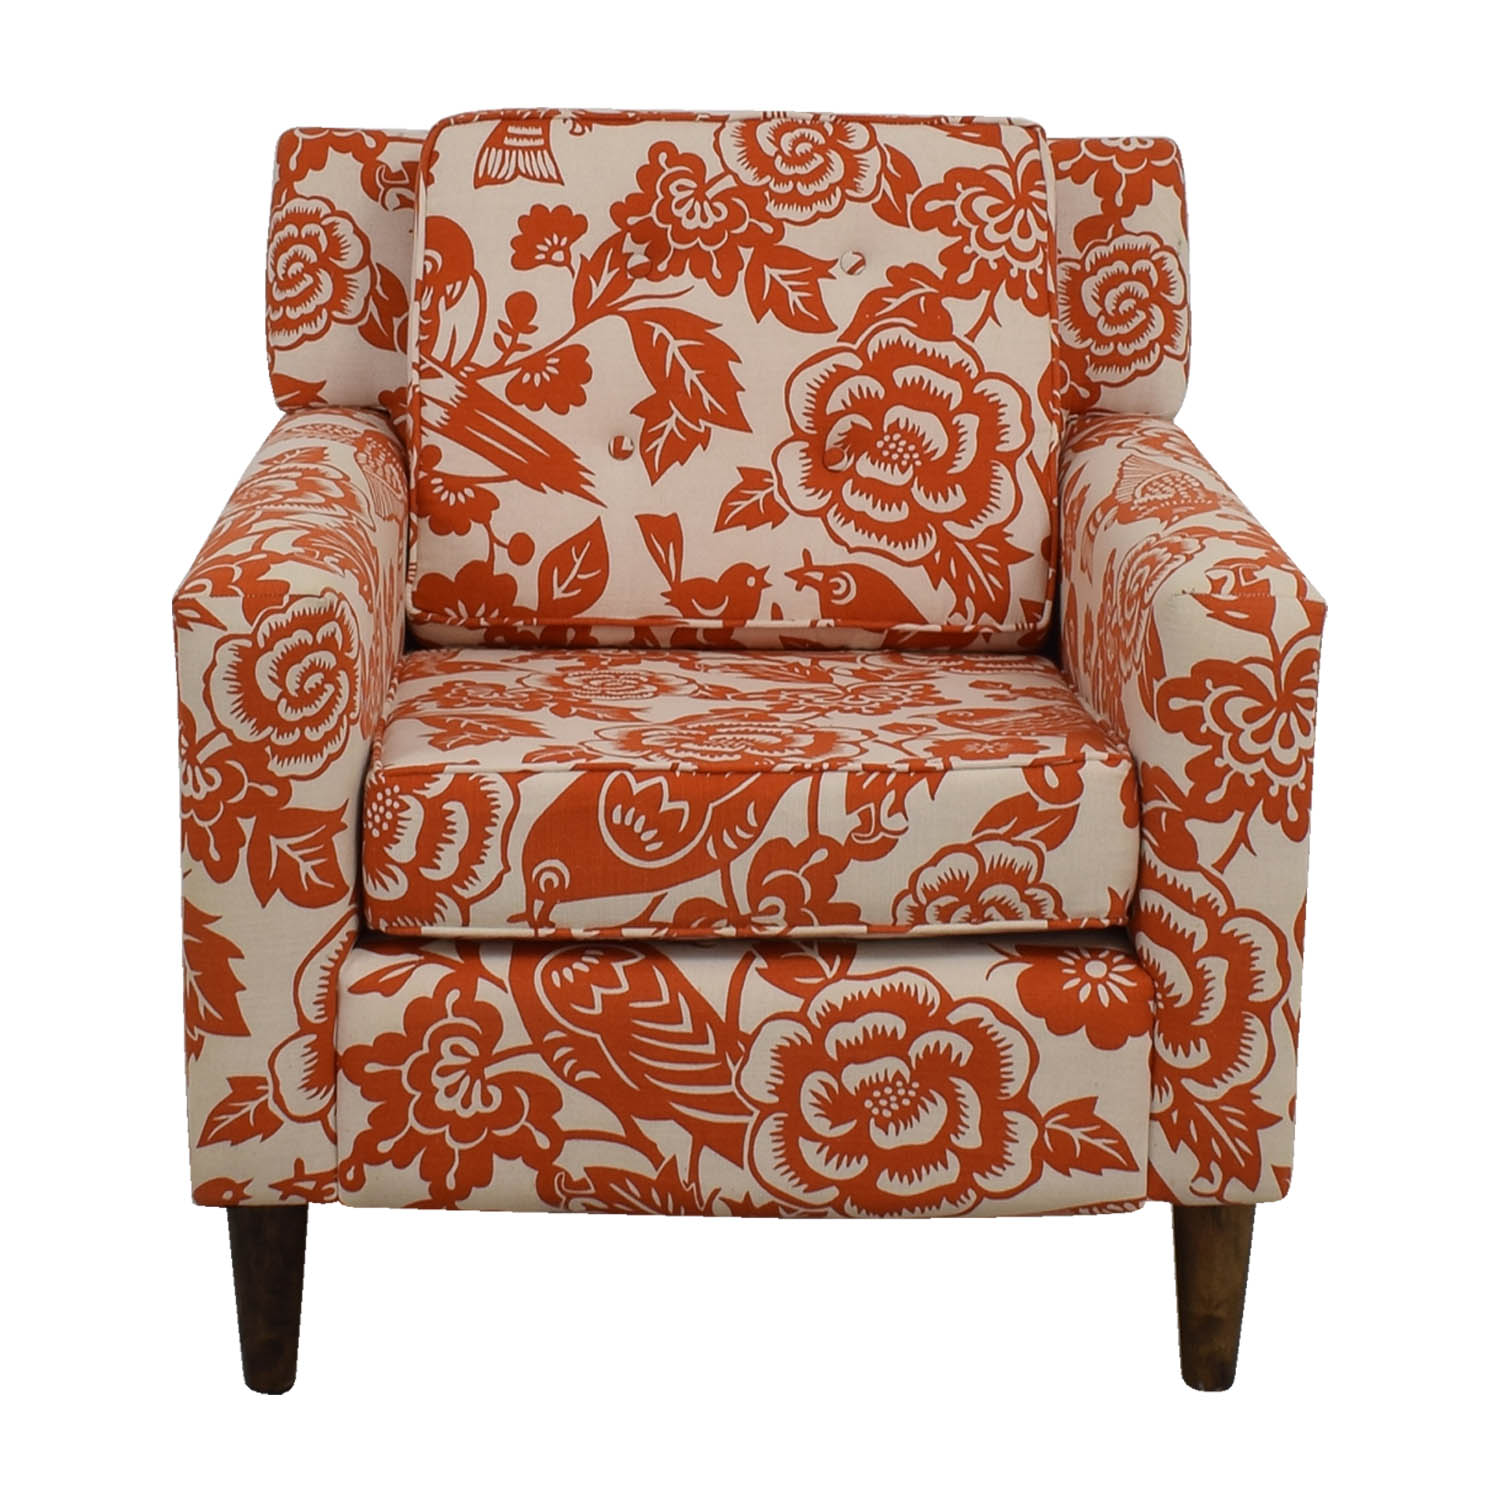 Orange Floral Accent Armchair sale ...  sc 1 st  Furnishare & 90% OFF - Orange Floral Accent Armchair / Chairs